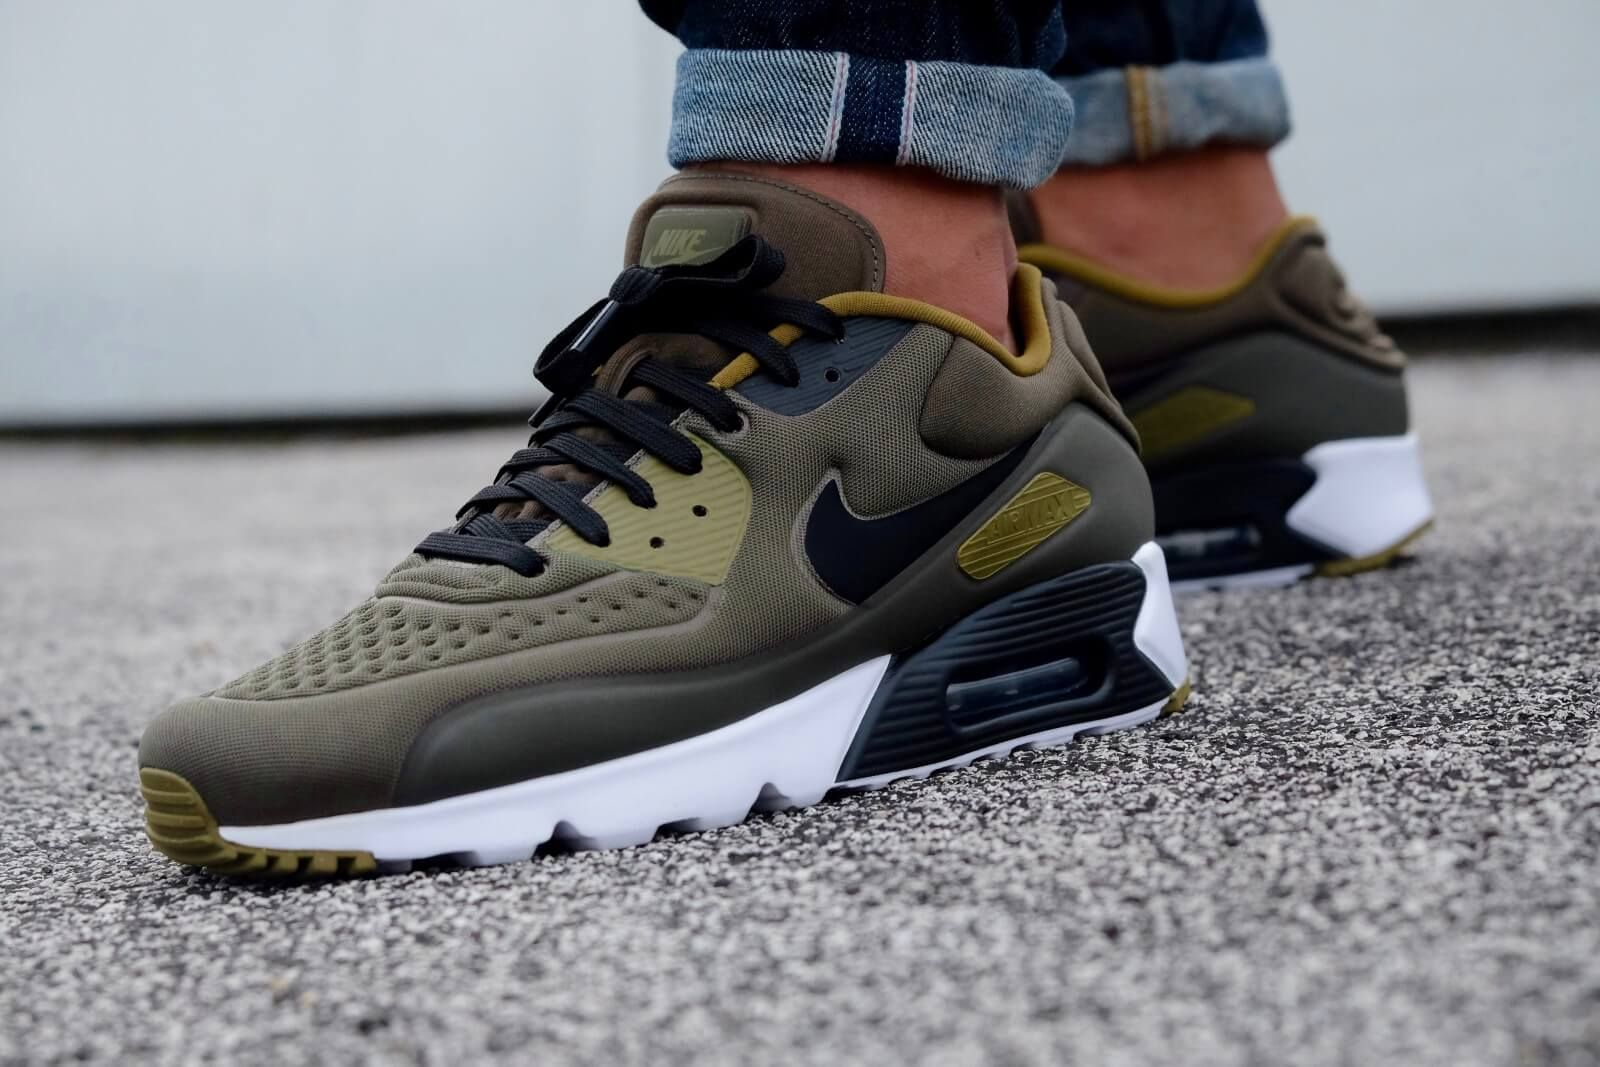 best sneakers 5a689 30a06 Nike Air Max 90 Ultra Special Edition Cargo Khaki Black-Olive Flak-White -  845039-300